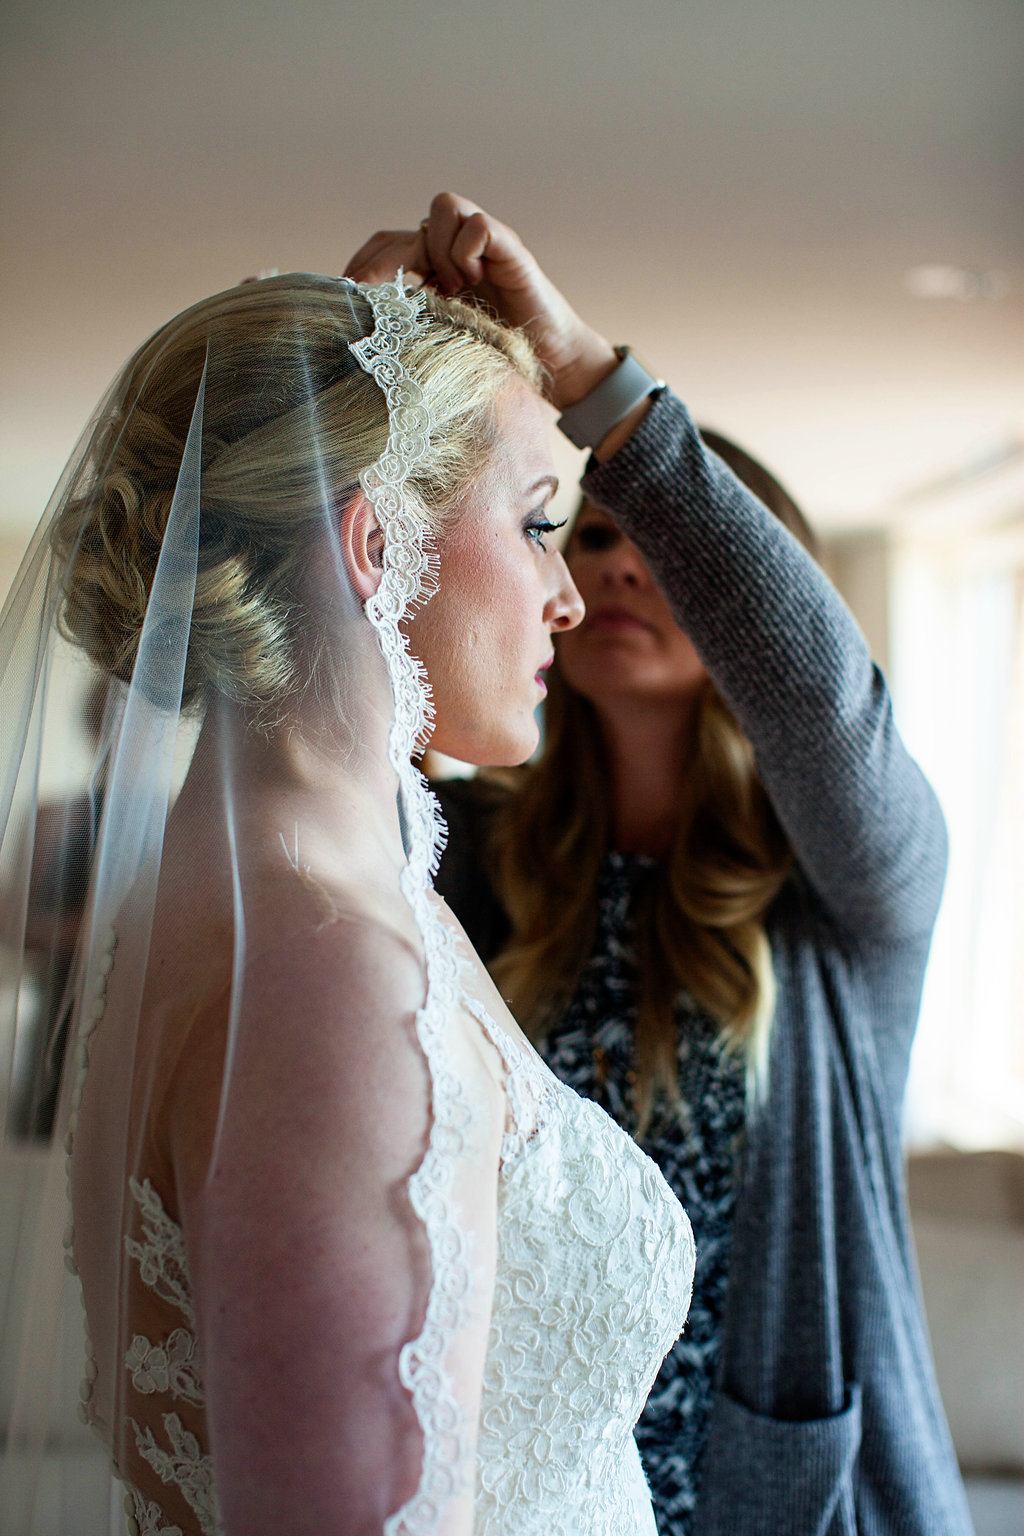 Cathedral Lace Rimmed Bridal Veil - Rhode Island Wedding Venue - Belle Mer Wedding